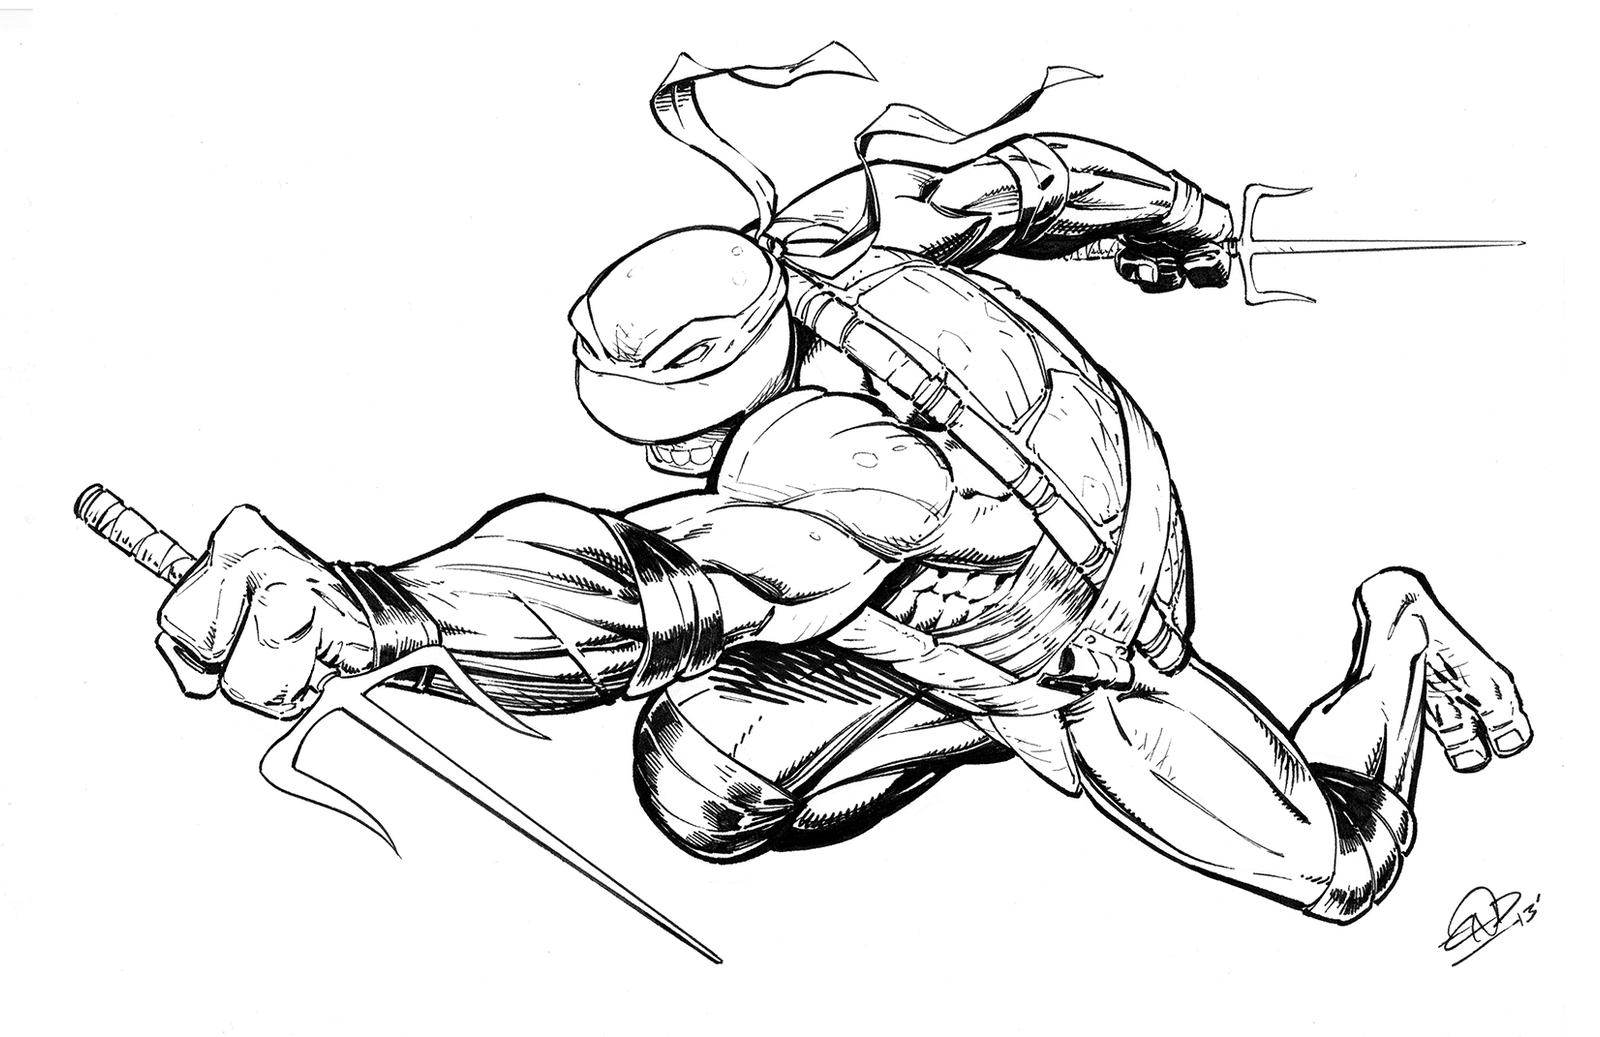 Line Art Ninja Turtles : Teenage mutant ninja turtles rafael inks by saviorsson on